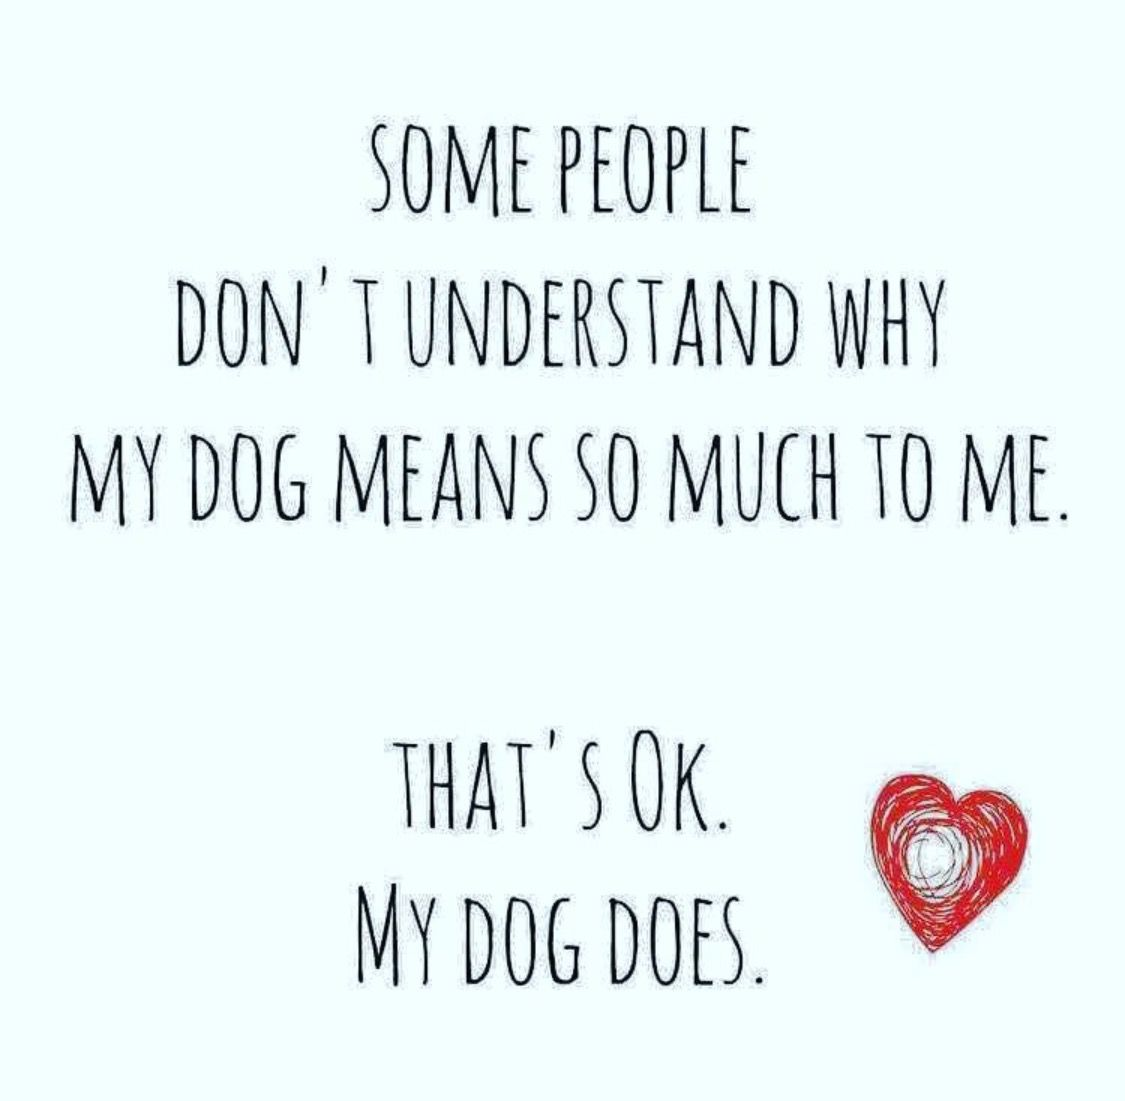 I Love My Dog Quotes Pinjan Henry On Quotes  Pinterest  Dog Doggies And Animal